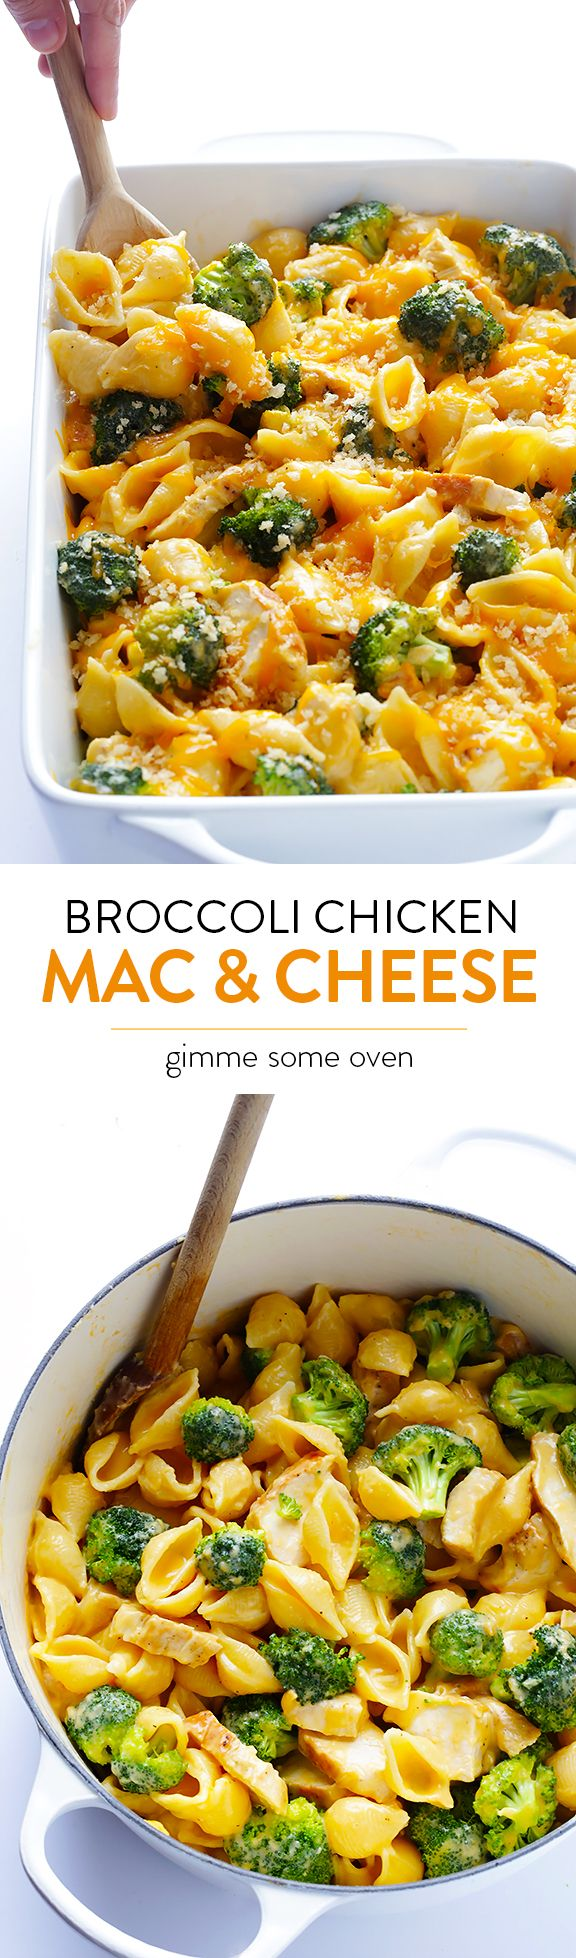 Broccoli Chicken Mac & Cheese – Easy to make, super tasty, and you can serve it stovetop-style or baked.